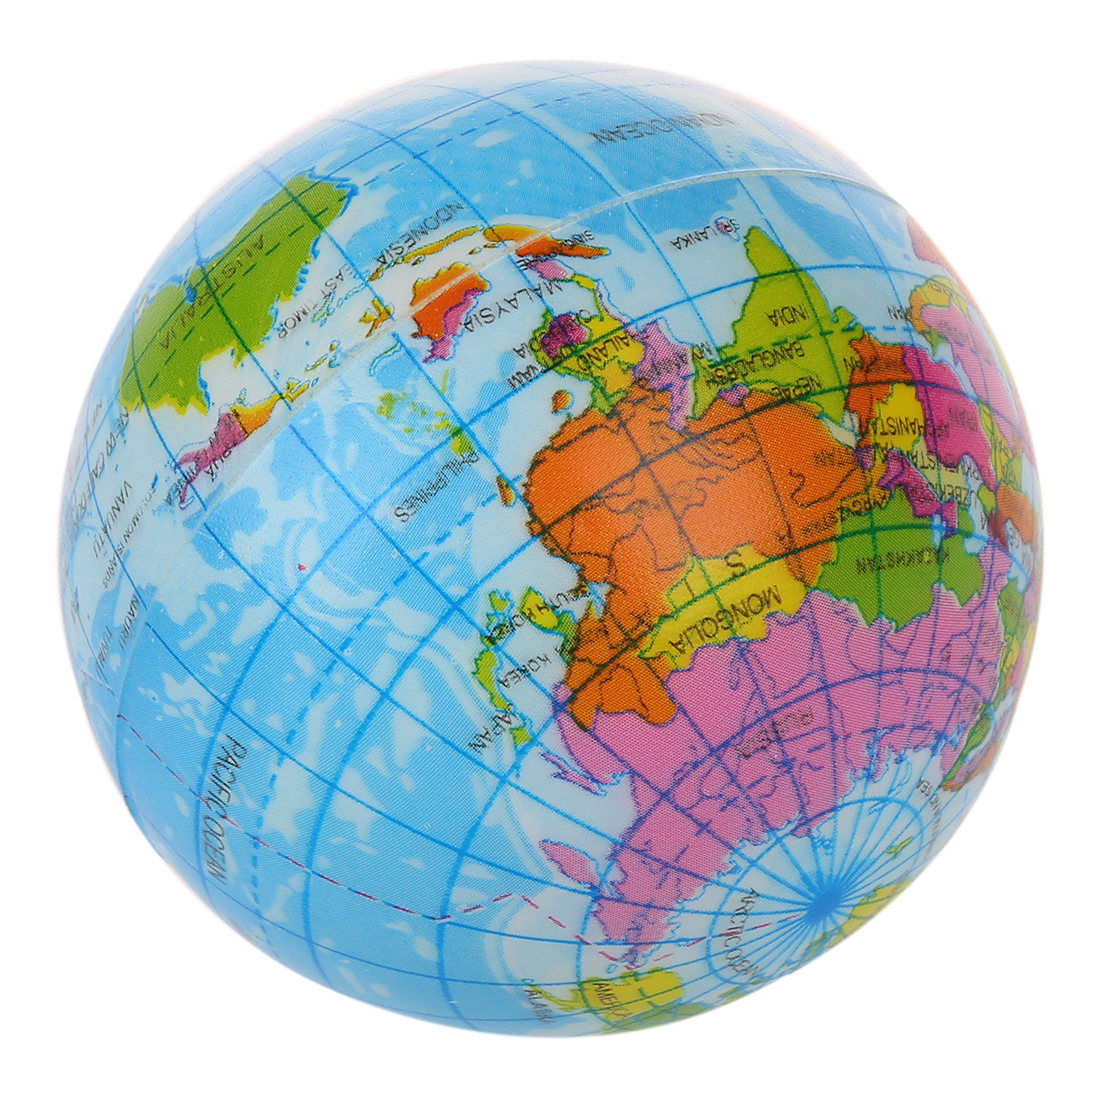 New world map foam earth globe stress relief bouncy ball atlas new world map foam earth globe stress relief bouncy ball atlas geography toy in toy balls from toys hobbies on aliexpress alibaba group gumiabroncs Choice Image